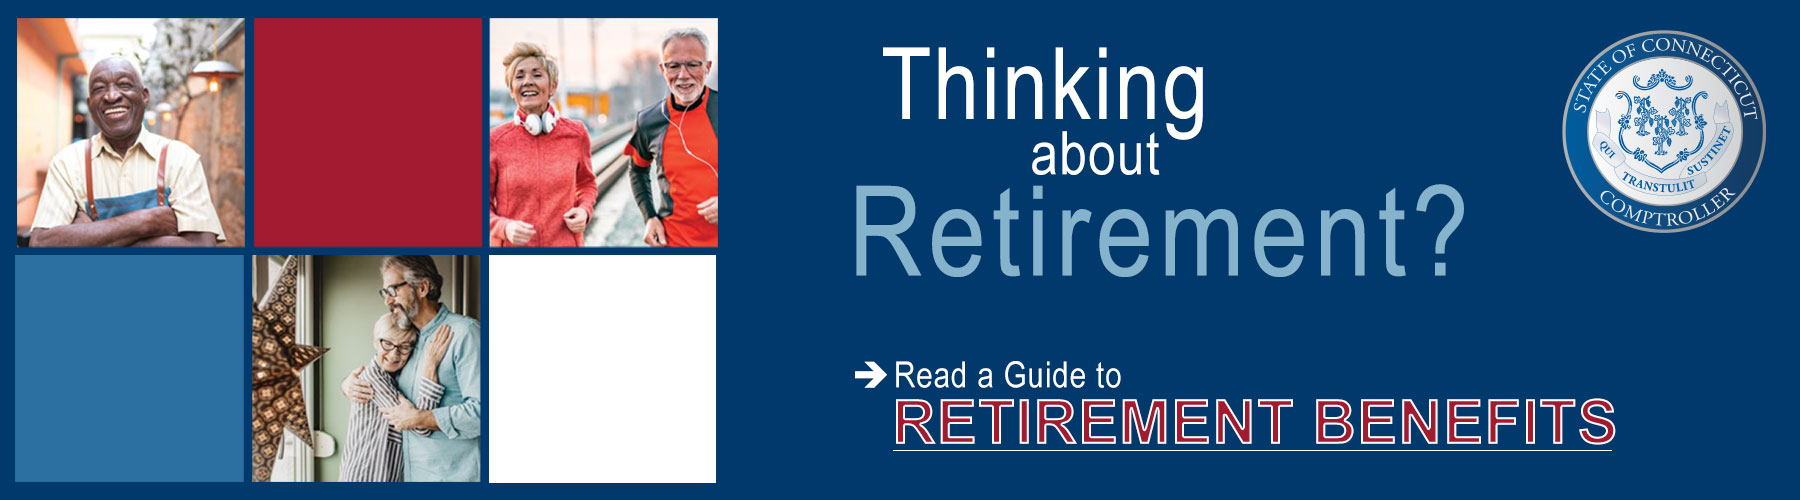 Guide to Retirement Benefits